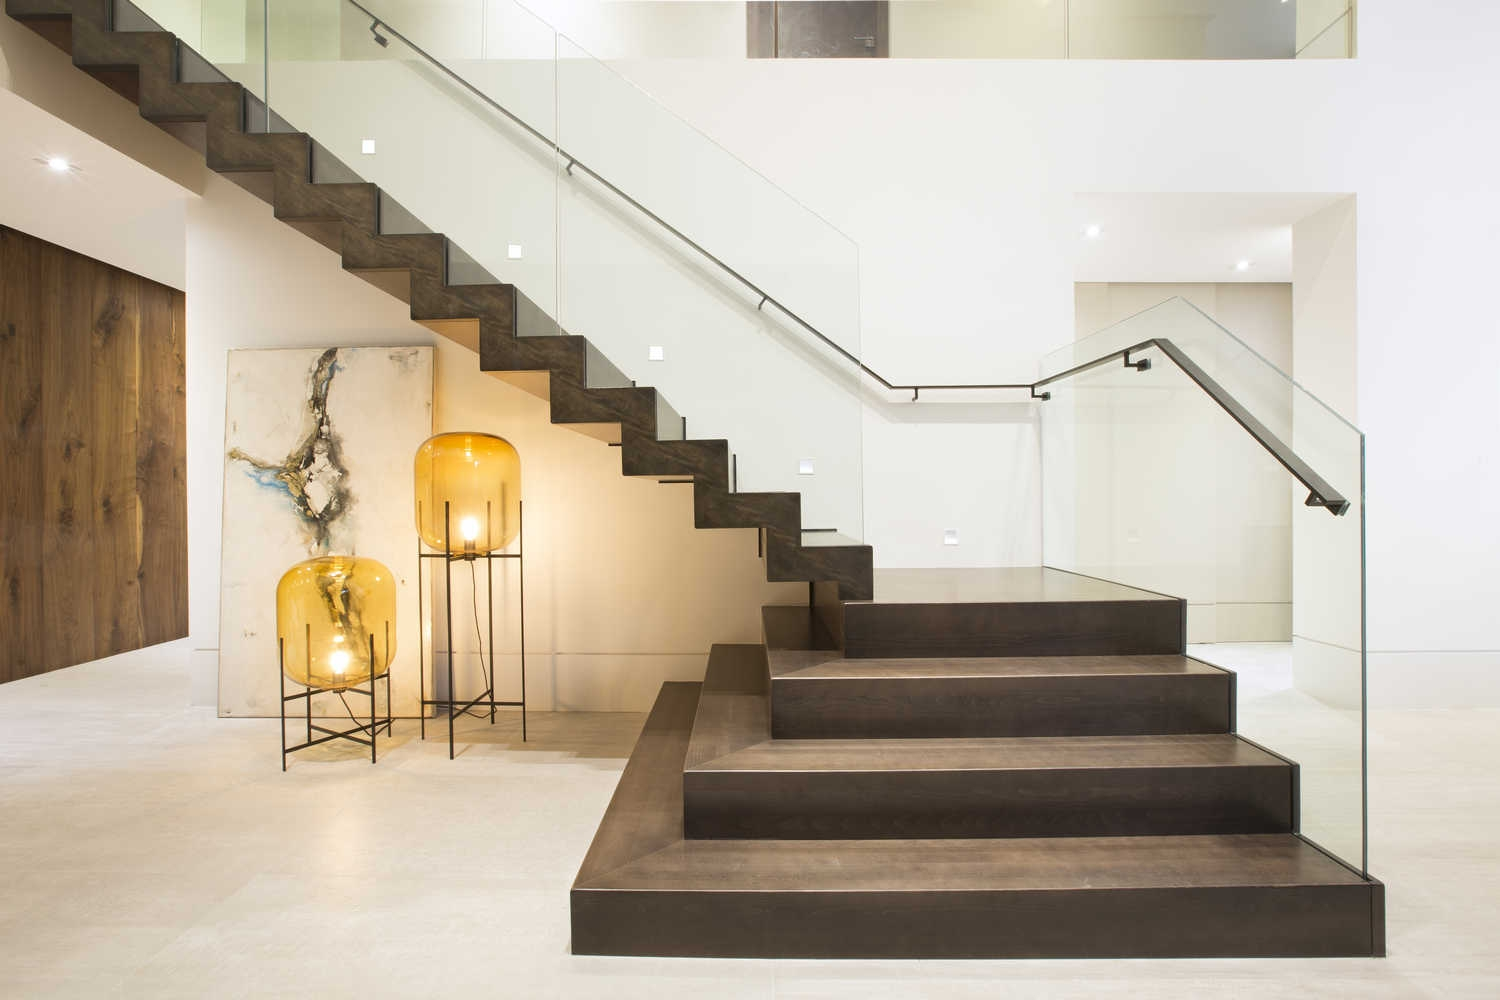 Staircase Design By Miami S Best Interior Designers | Stairs For House Design